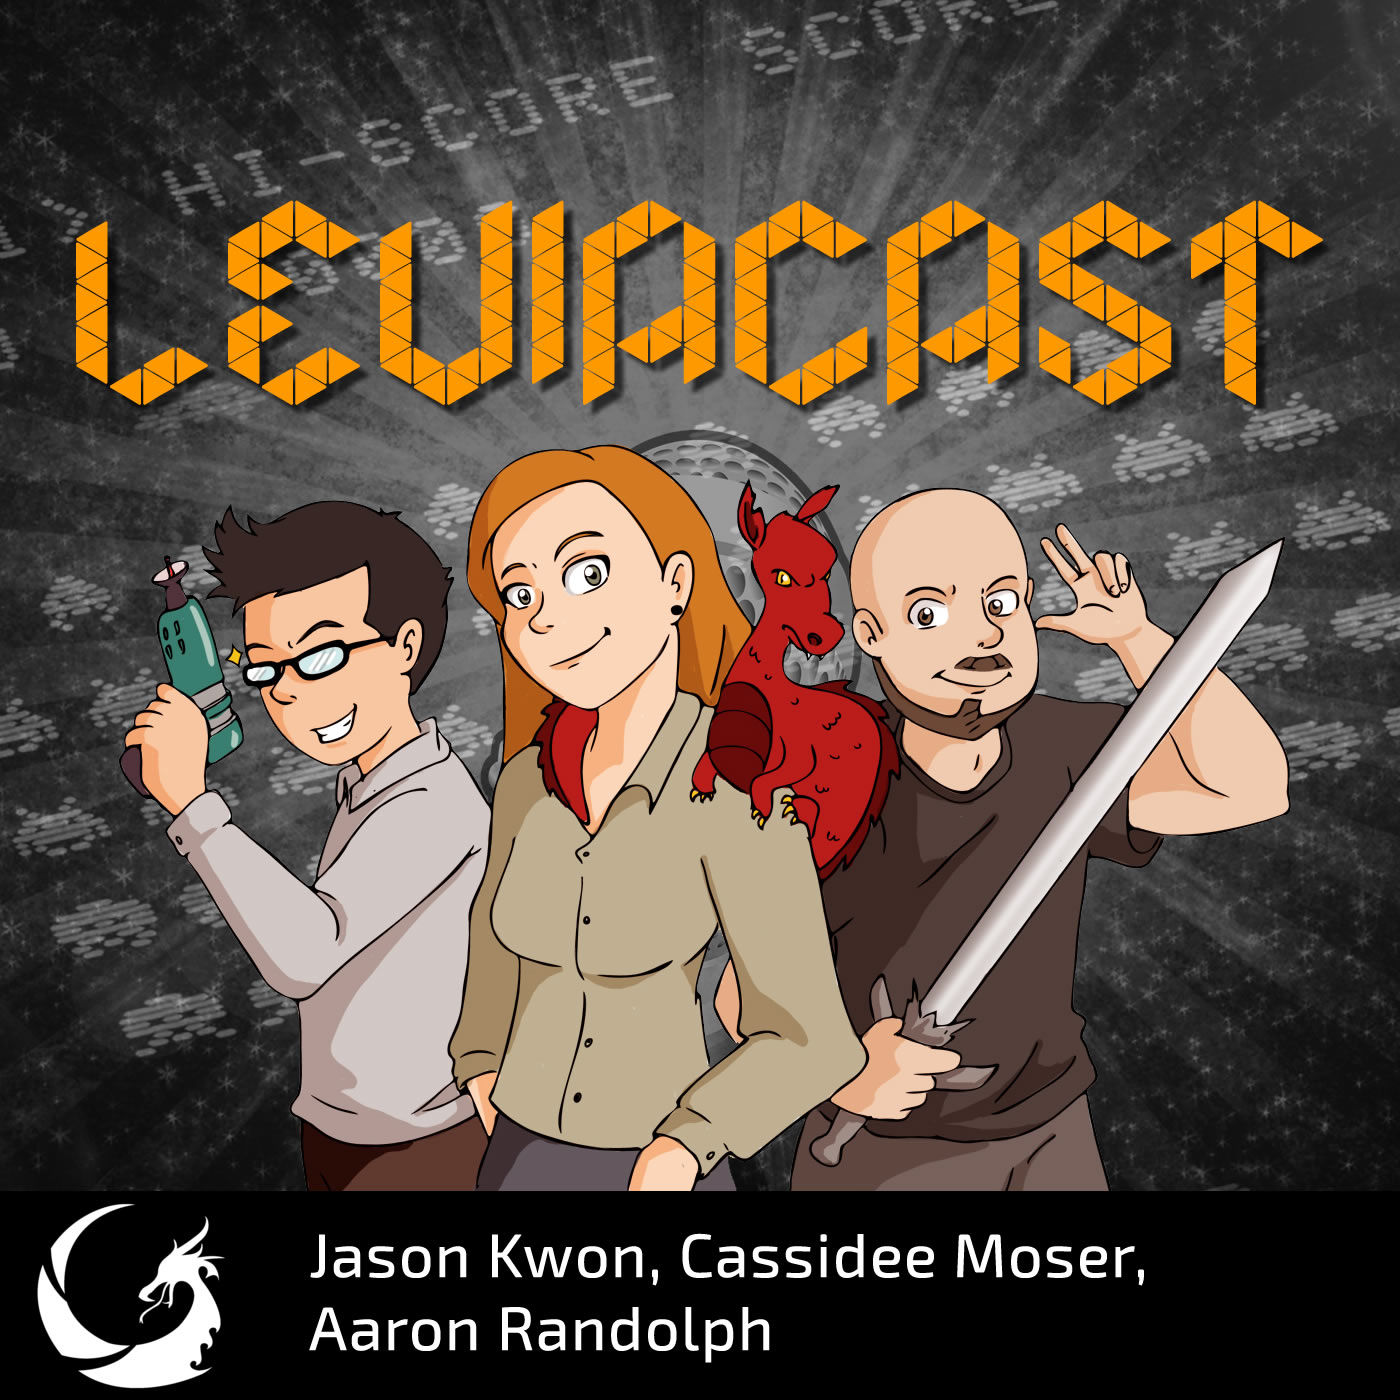 Leviacast 58: Goat Simulator, Tesla Effect, and Headhunter